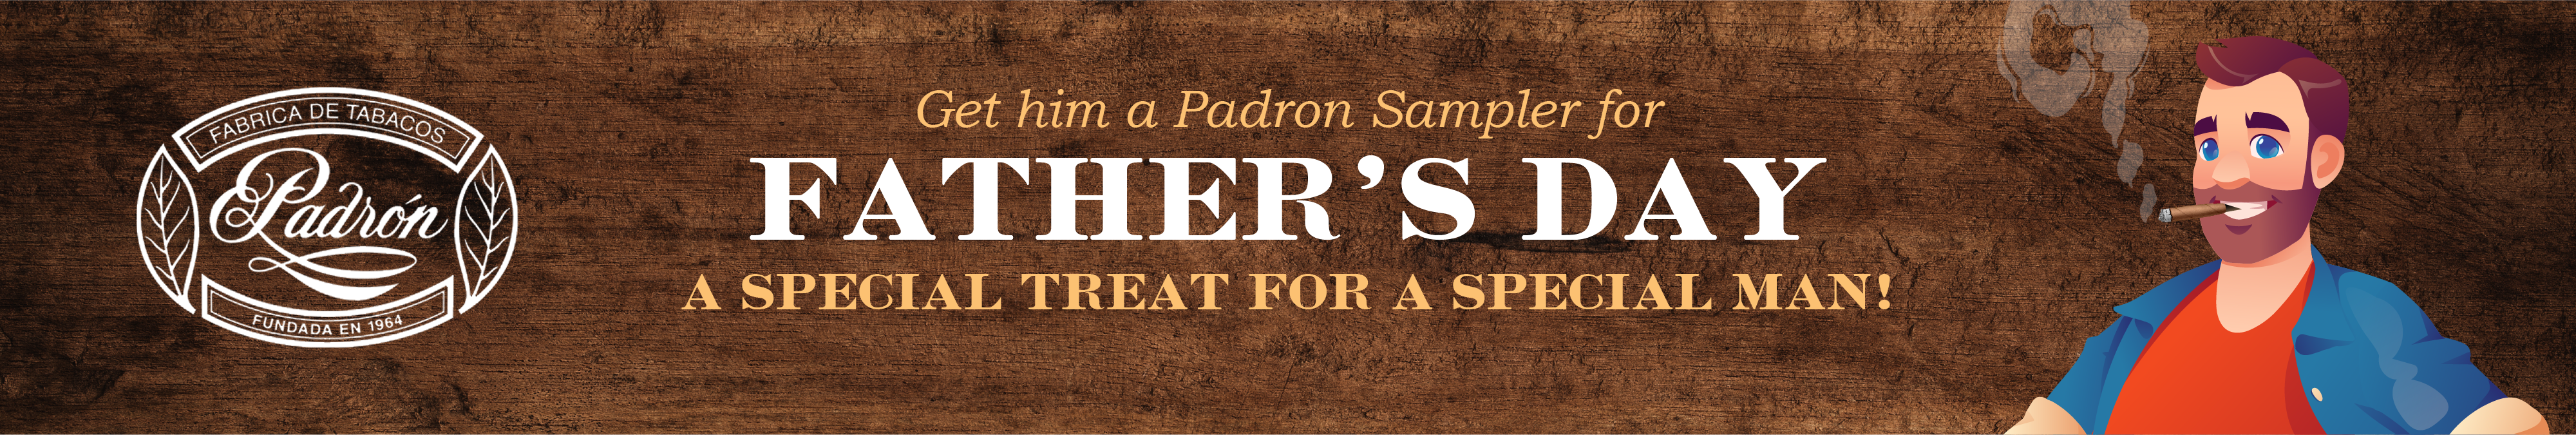 Padron Samplers for Father's Day